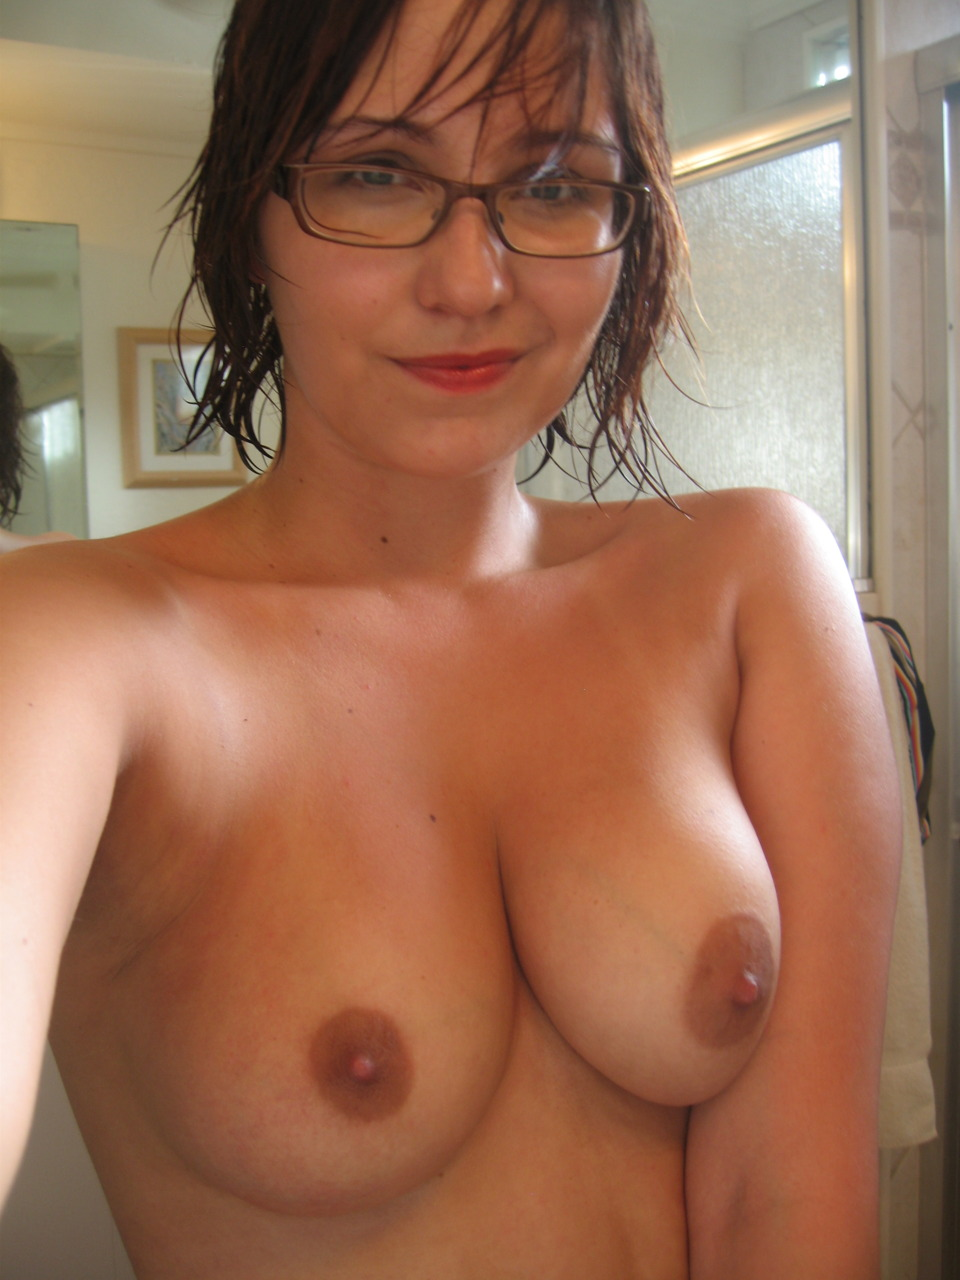 Glasses naked in nerd girl